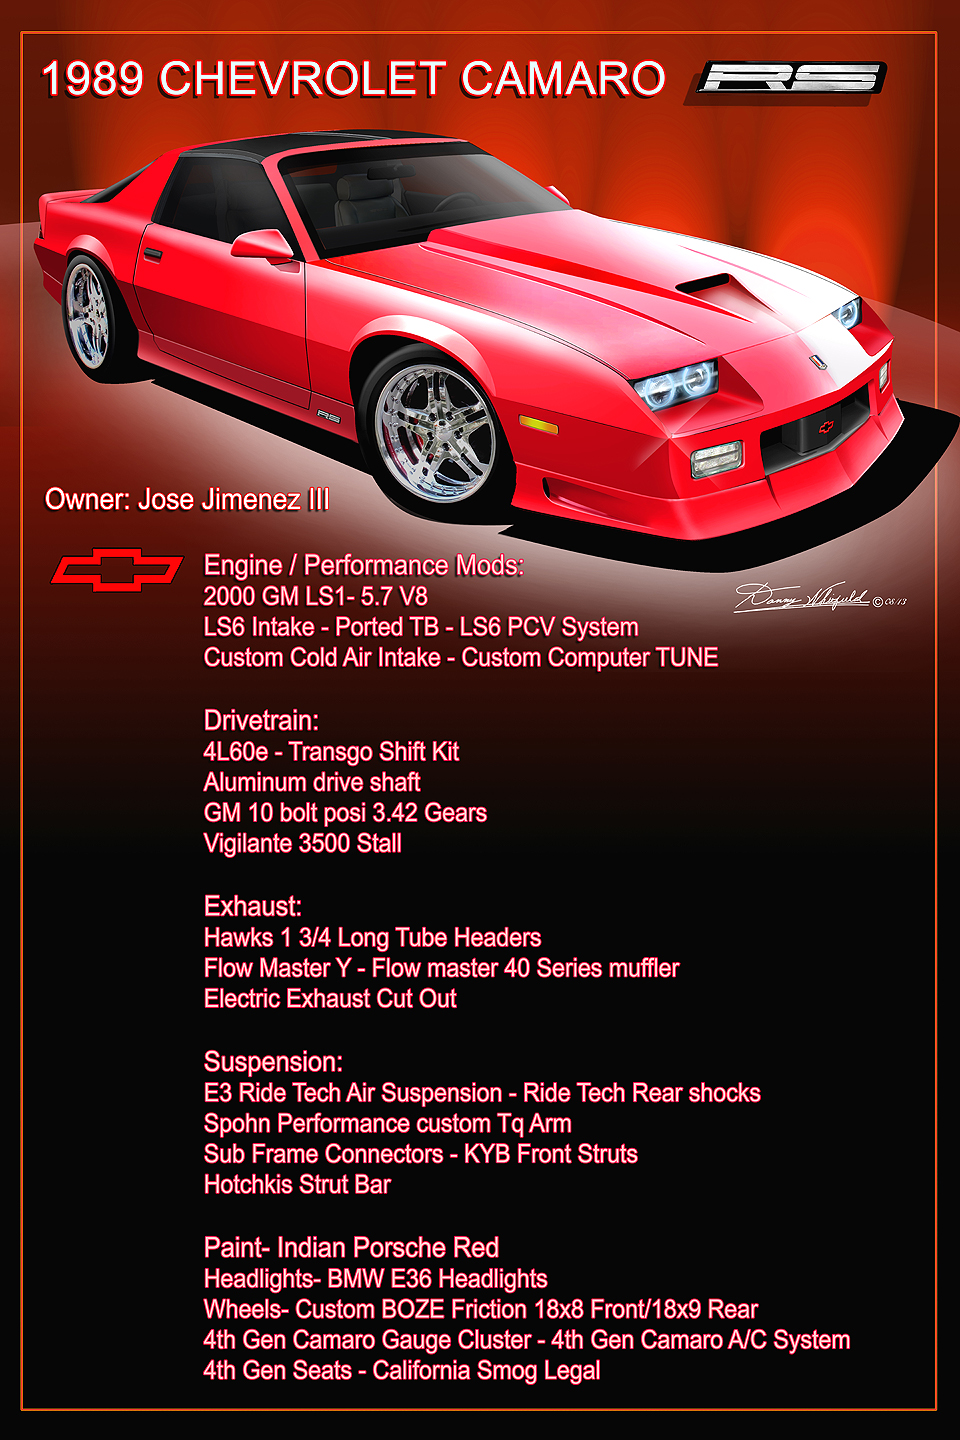 Custom Show Boards For Car Events The Automotive Art Of Danny - Car show boards